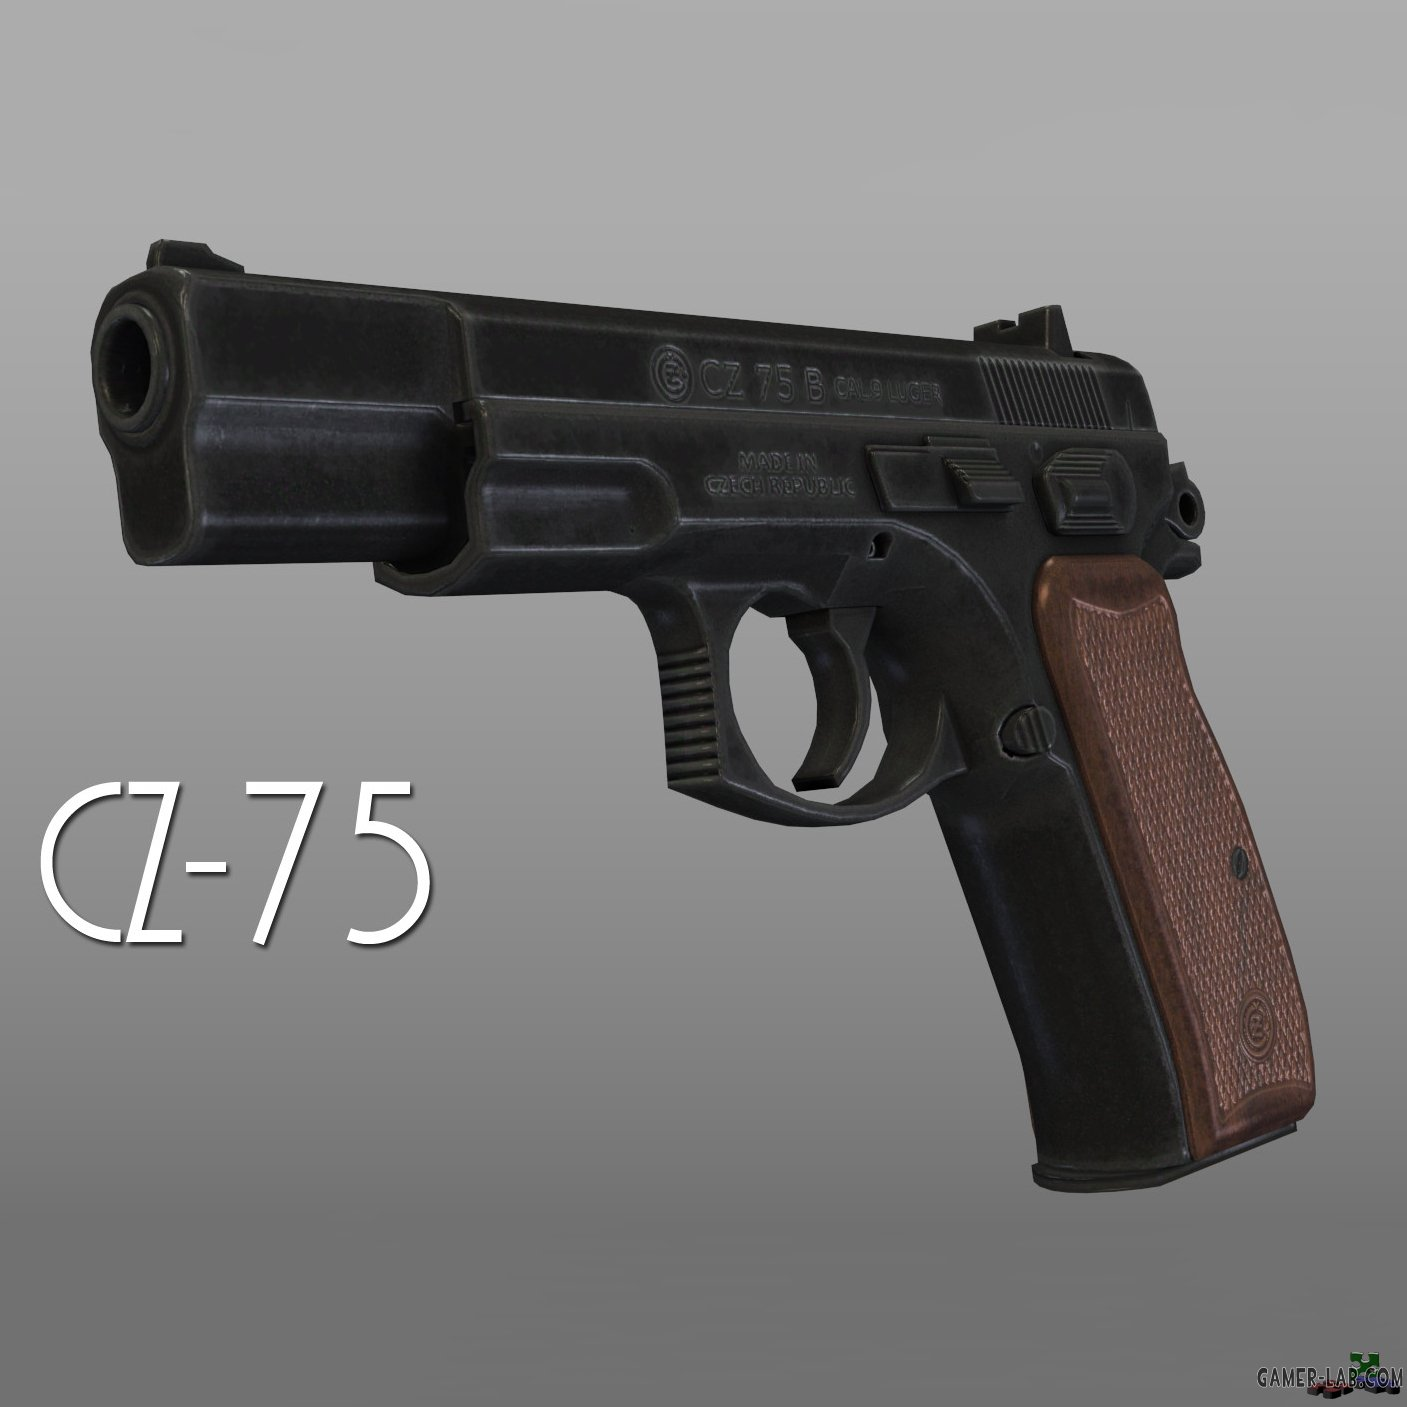 CZ-75 - Pistol - Half-Life 2 - Weapon models - Source